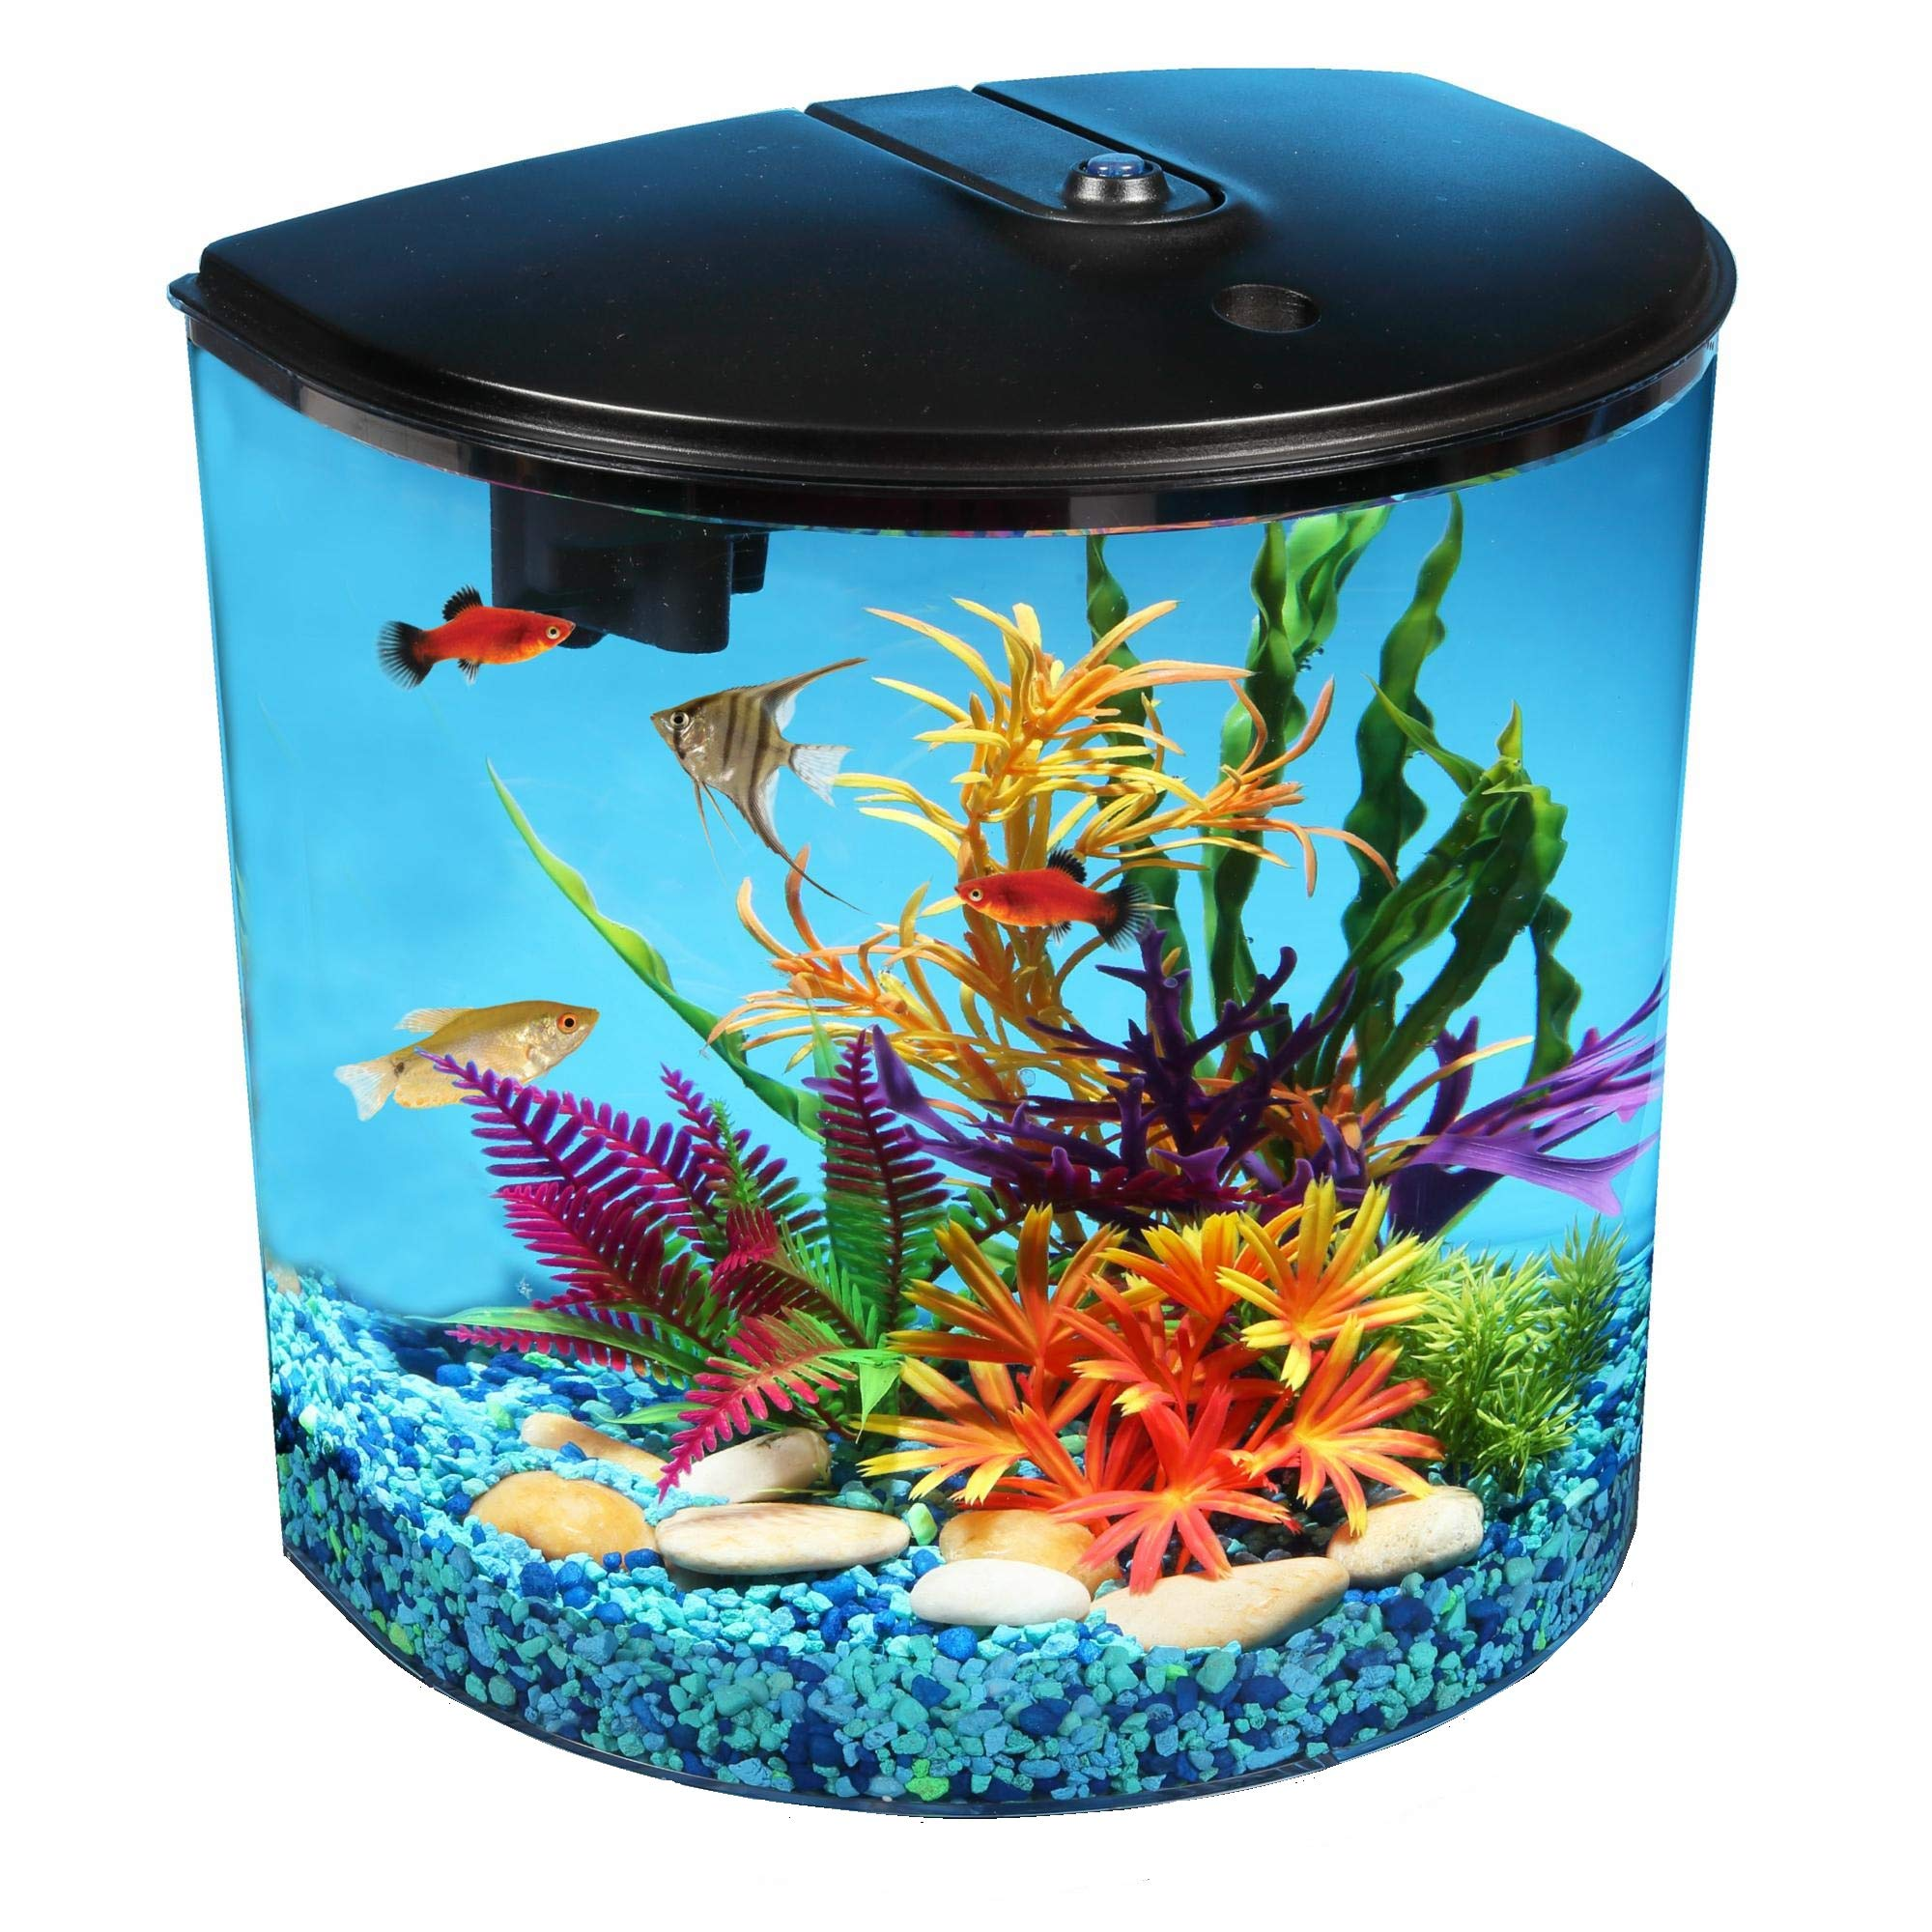 AquaView 3.5 gallon Fish Tank with Power Filter & LED Lighting by Koller Products